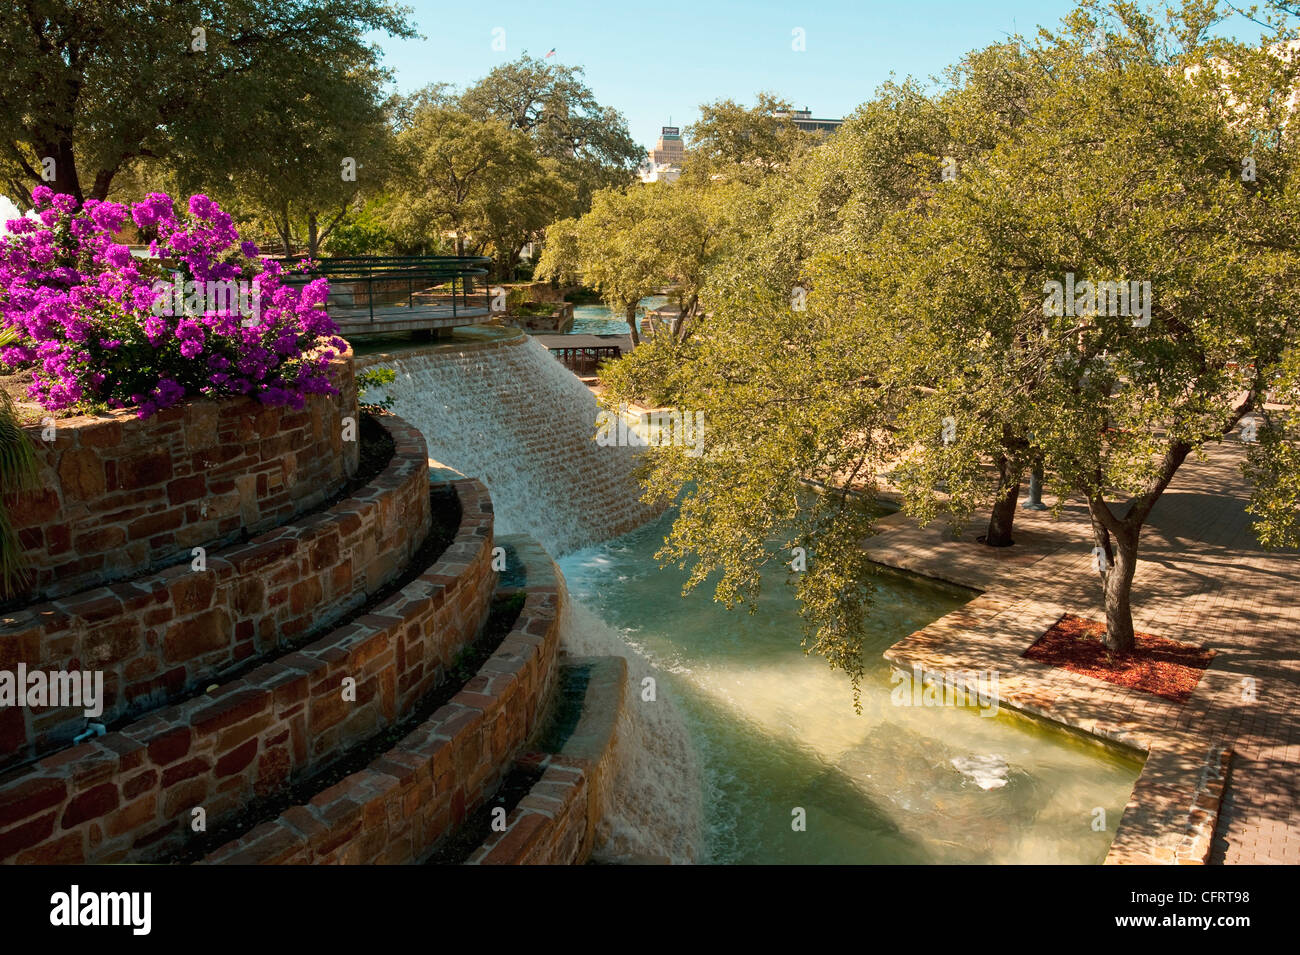 USA, Texas, San Antonio, HemisFair Park, Stone Waterfall, Garden ...